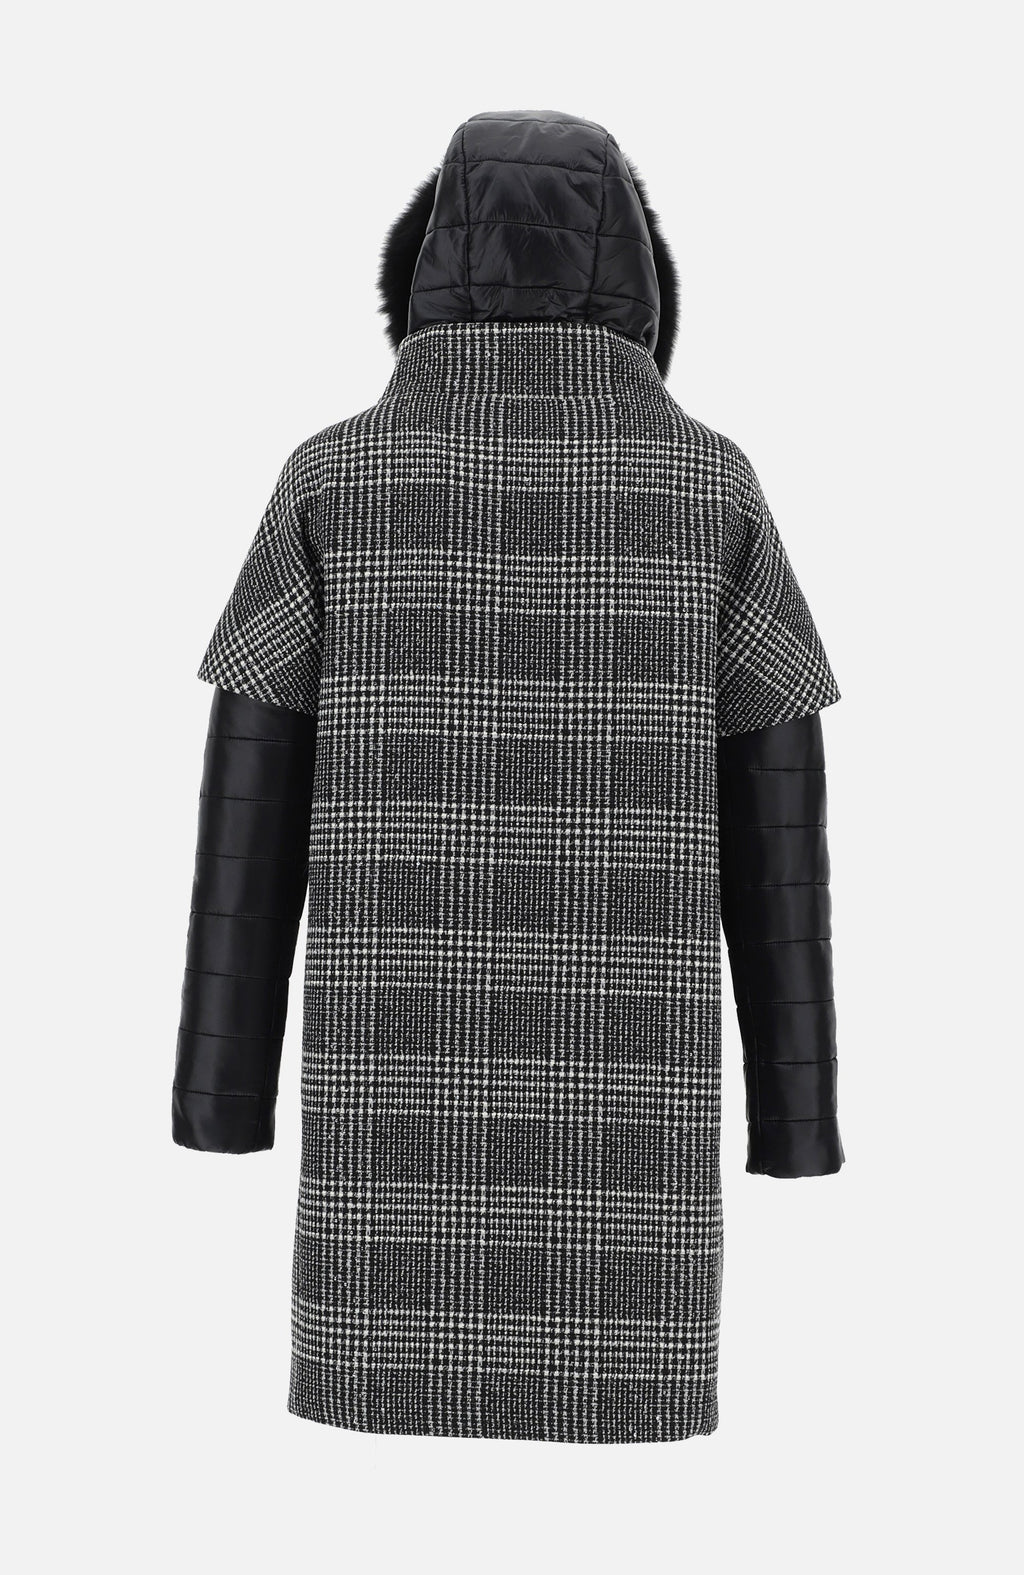 Herno Black Sparkling Check Coat